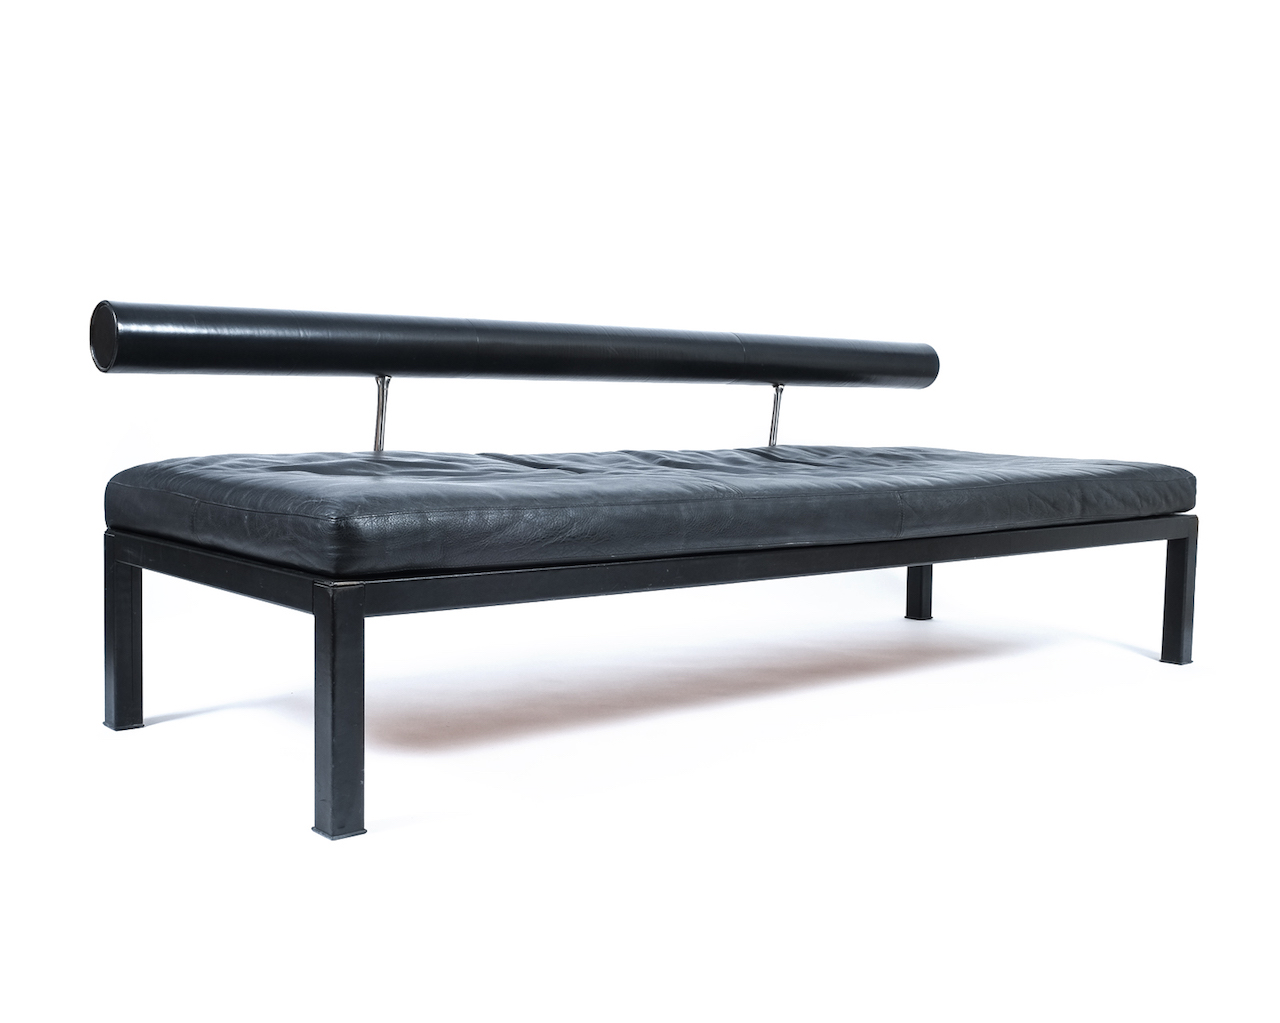 daybed daybedvel location phantom velvet home subject crop upscale bench smo k tine vintage smoke design subsampling